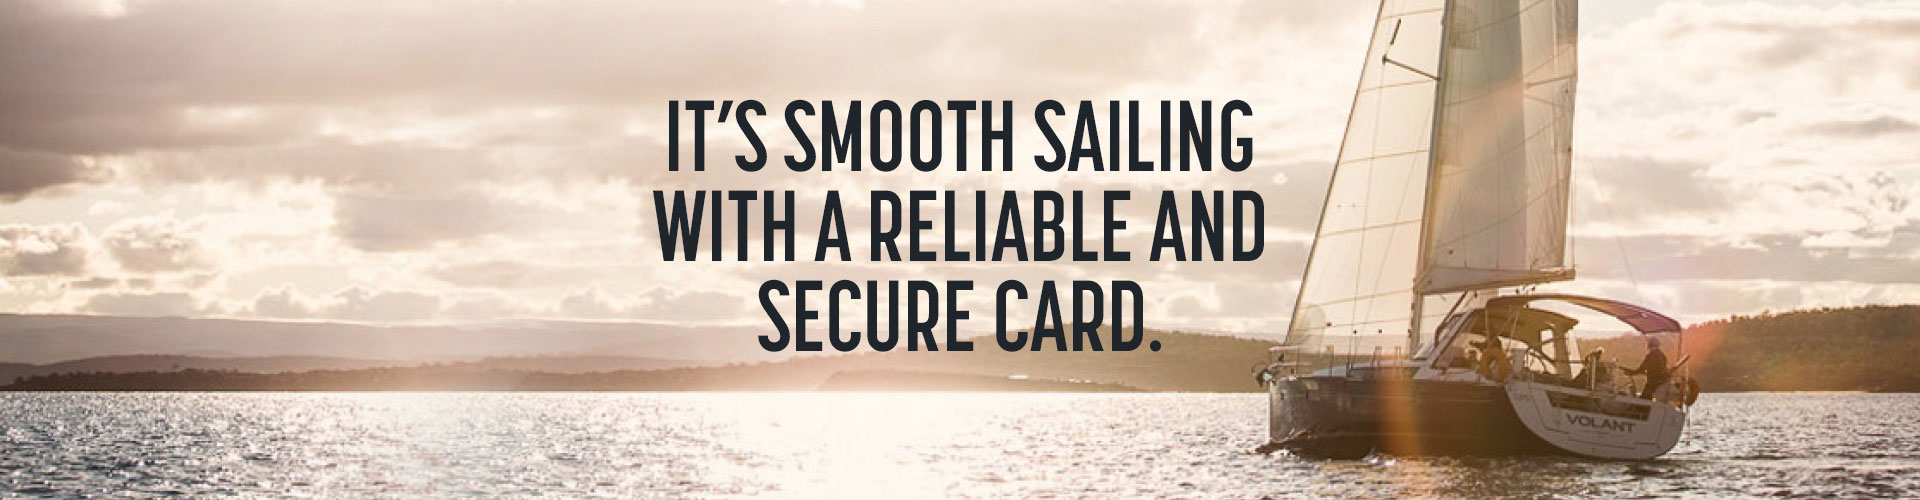 It's smooth sailing with a reliable and secure card.